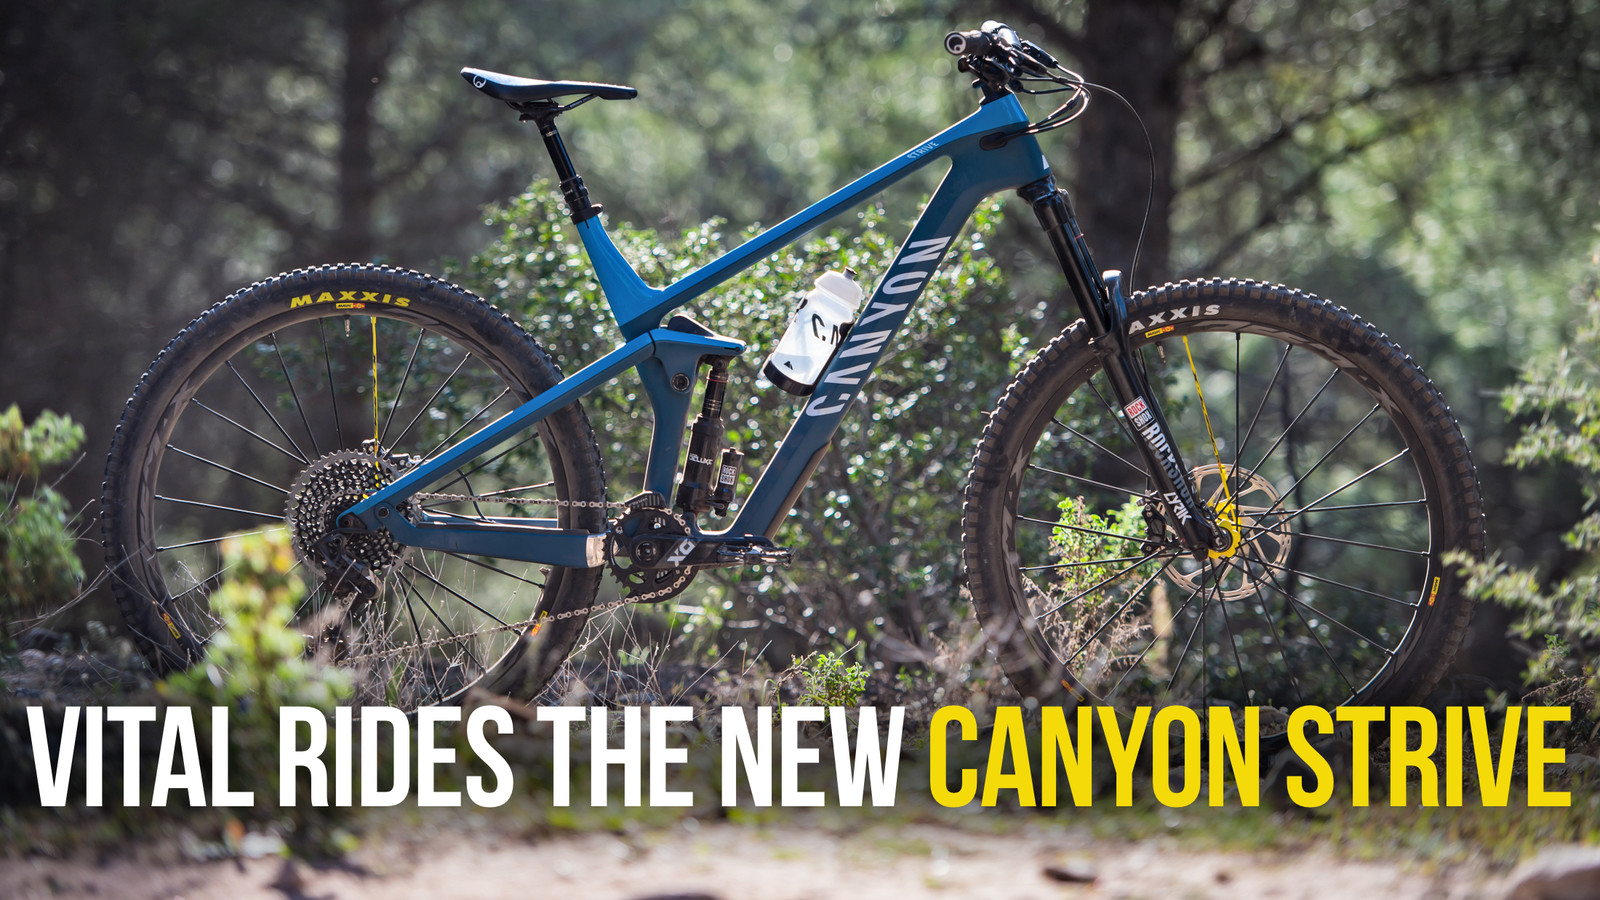 Vital Rides the All-New Canyon Strive 29 - Mountain Bikes